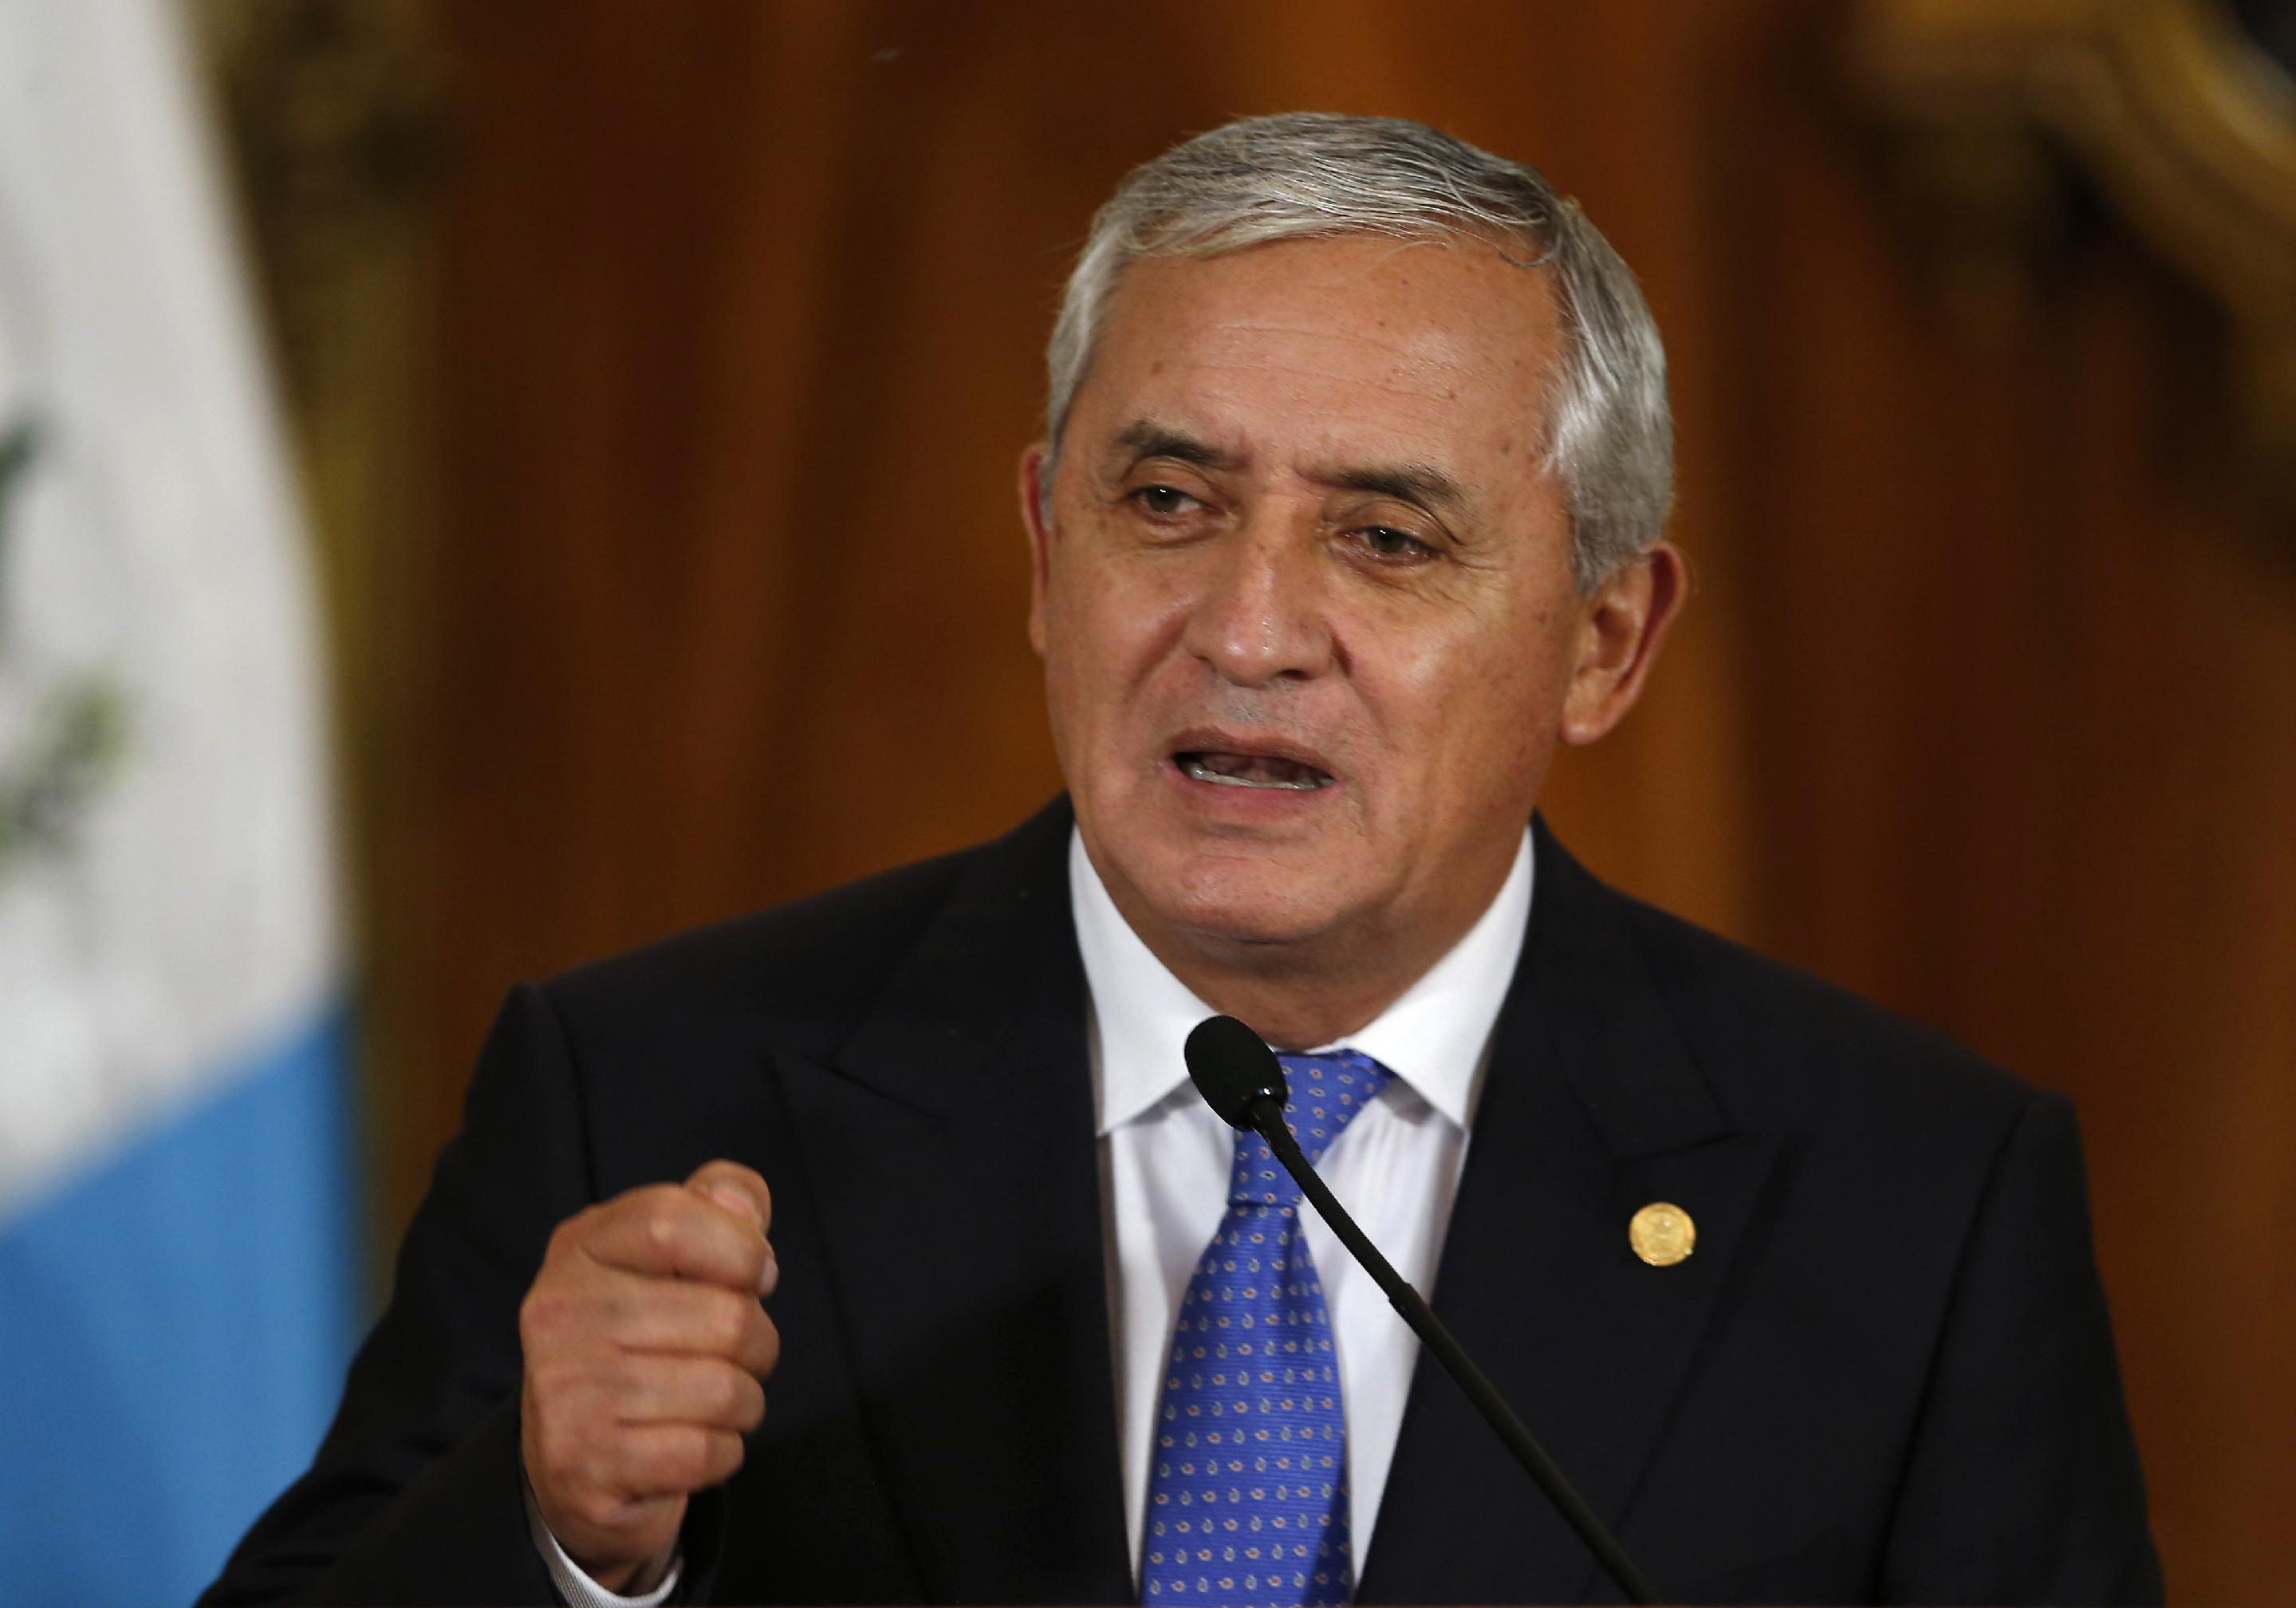 Guatemalan president says he'll face due process in scandal